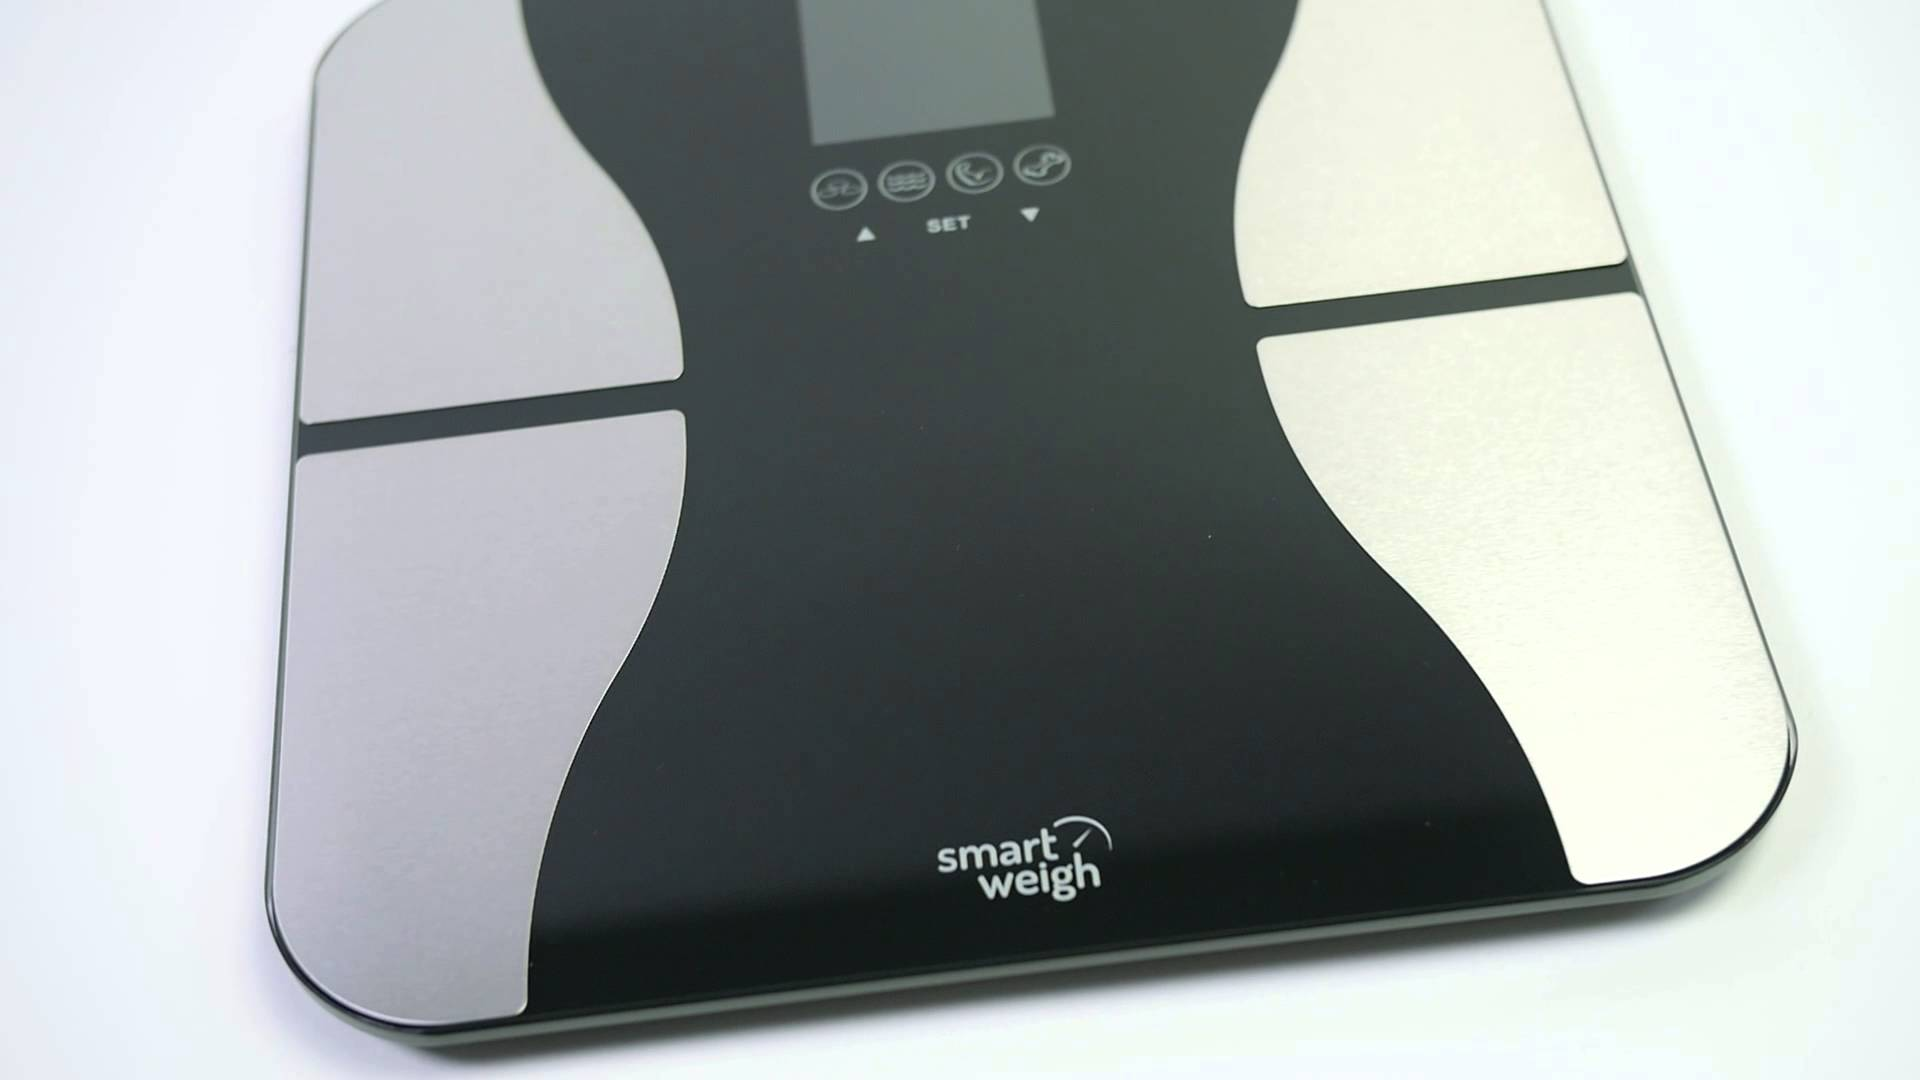 smart weigh sbs500